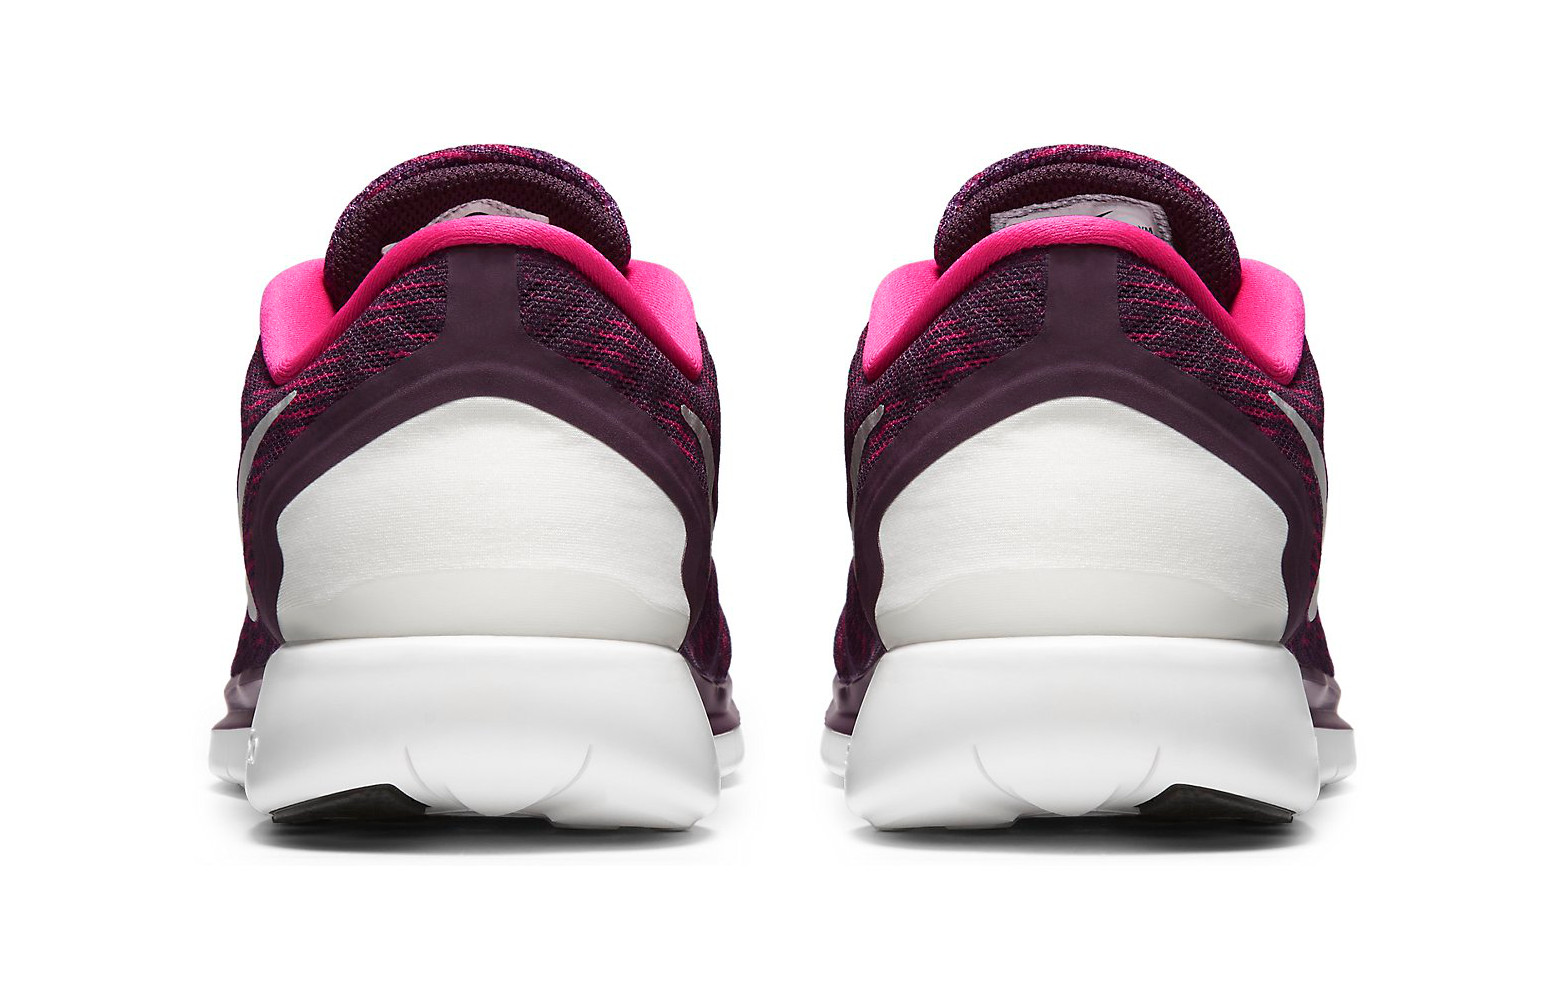 newest b69ac 2f8d4 Chaussures de Running Femme Nike FREE 5.0 Violet   Rose